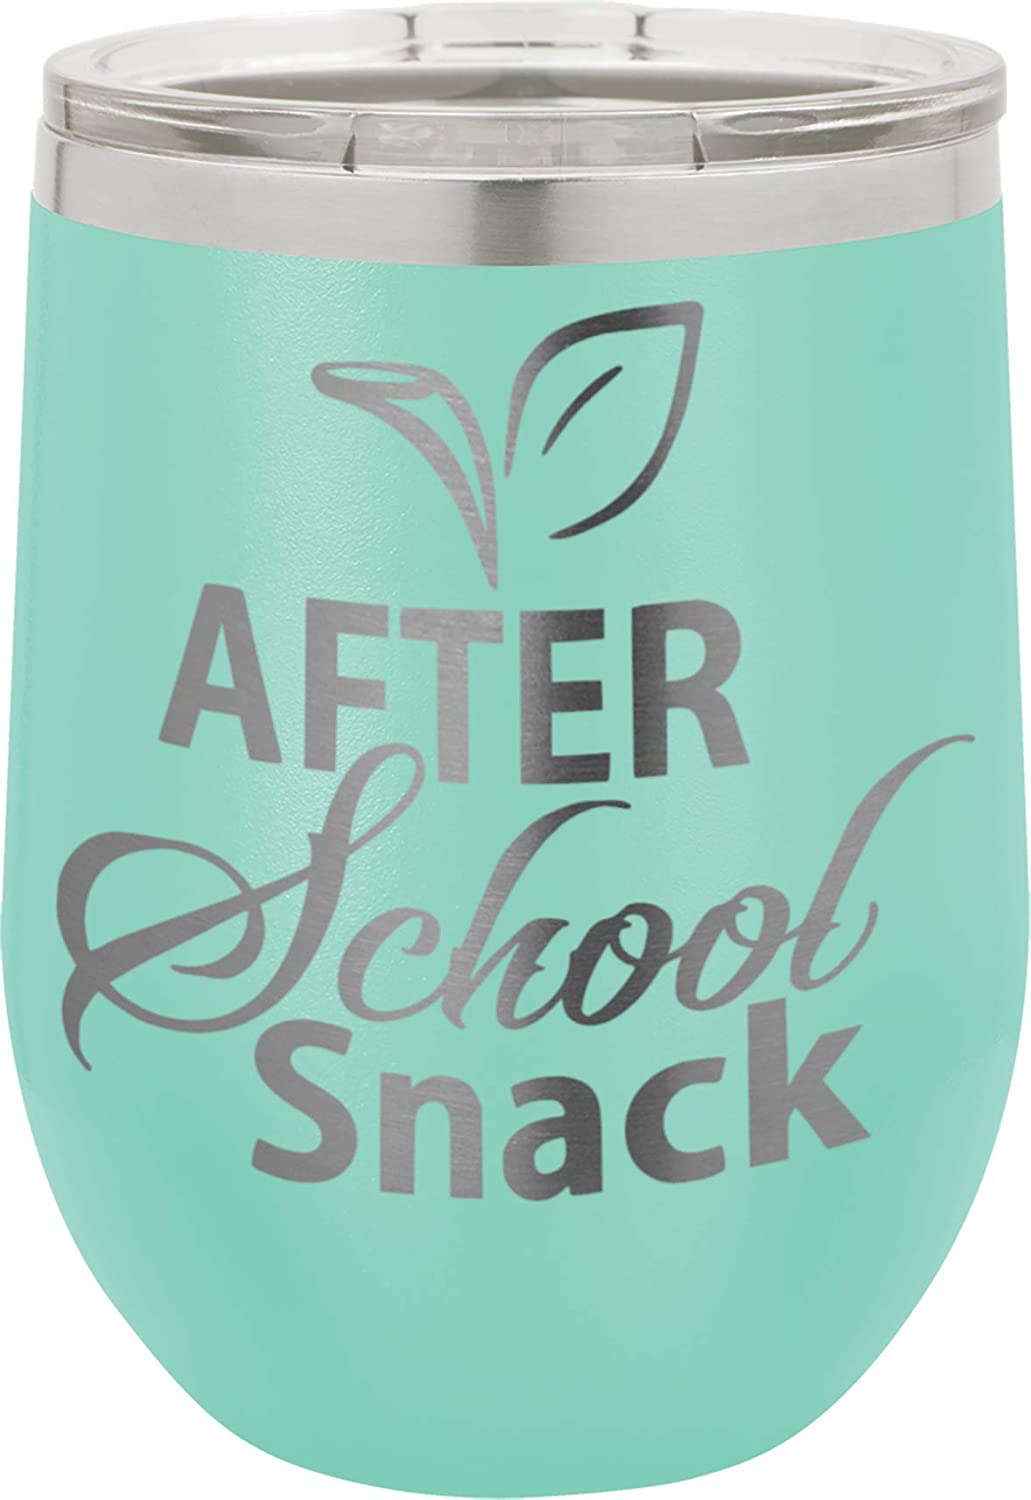 After School Snack - 12oz wine tumbler with lid - Stainless Steel - Insulated Stemless Double Wall Vacuum Tumbler - Funny Sayings - Mom Nana Dad Wife BFF Mens Woman Teens Teal